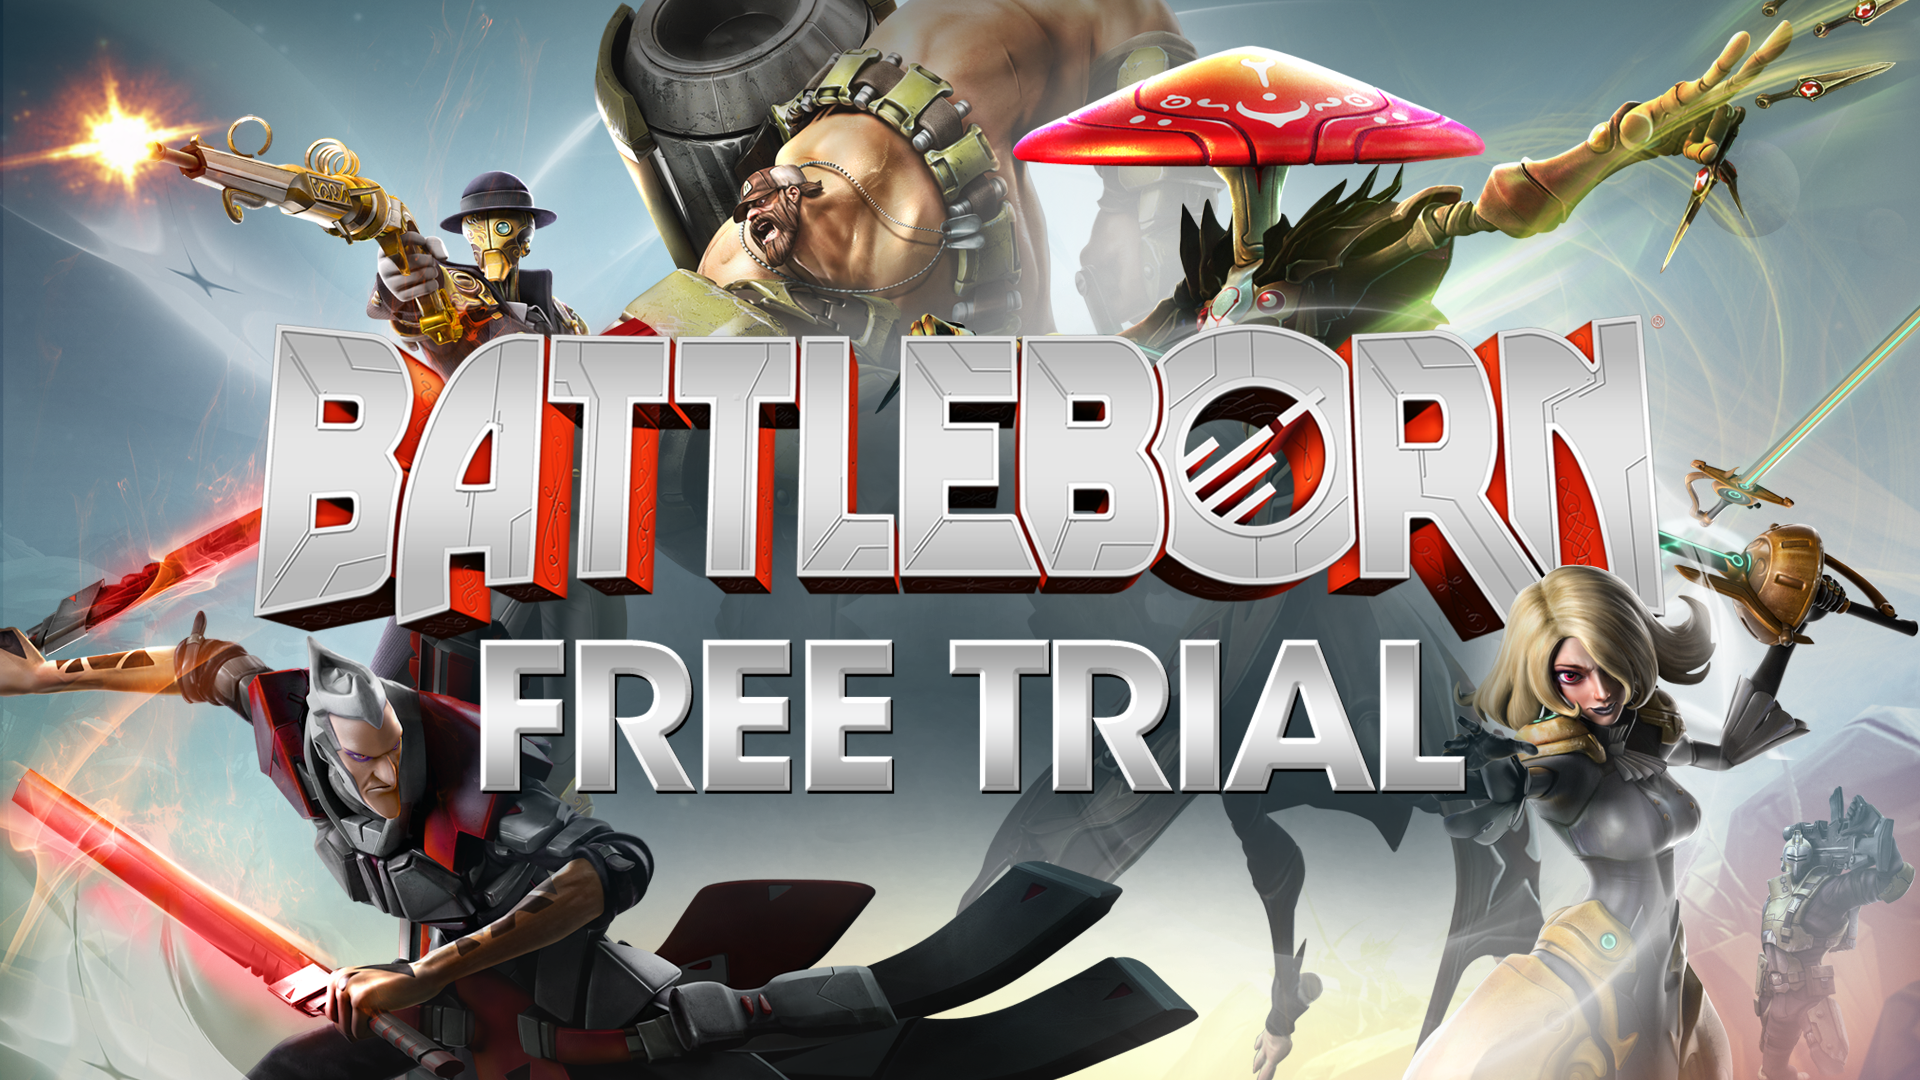 Gearbox Software Announces the Battleborn Free Trial